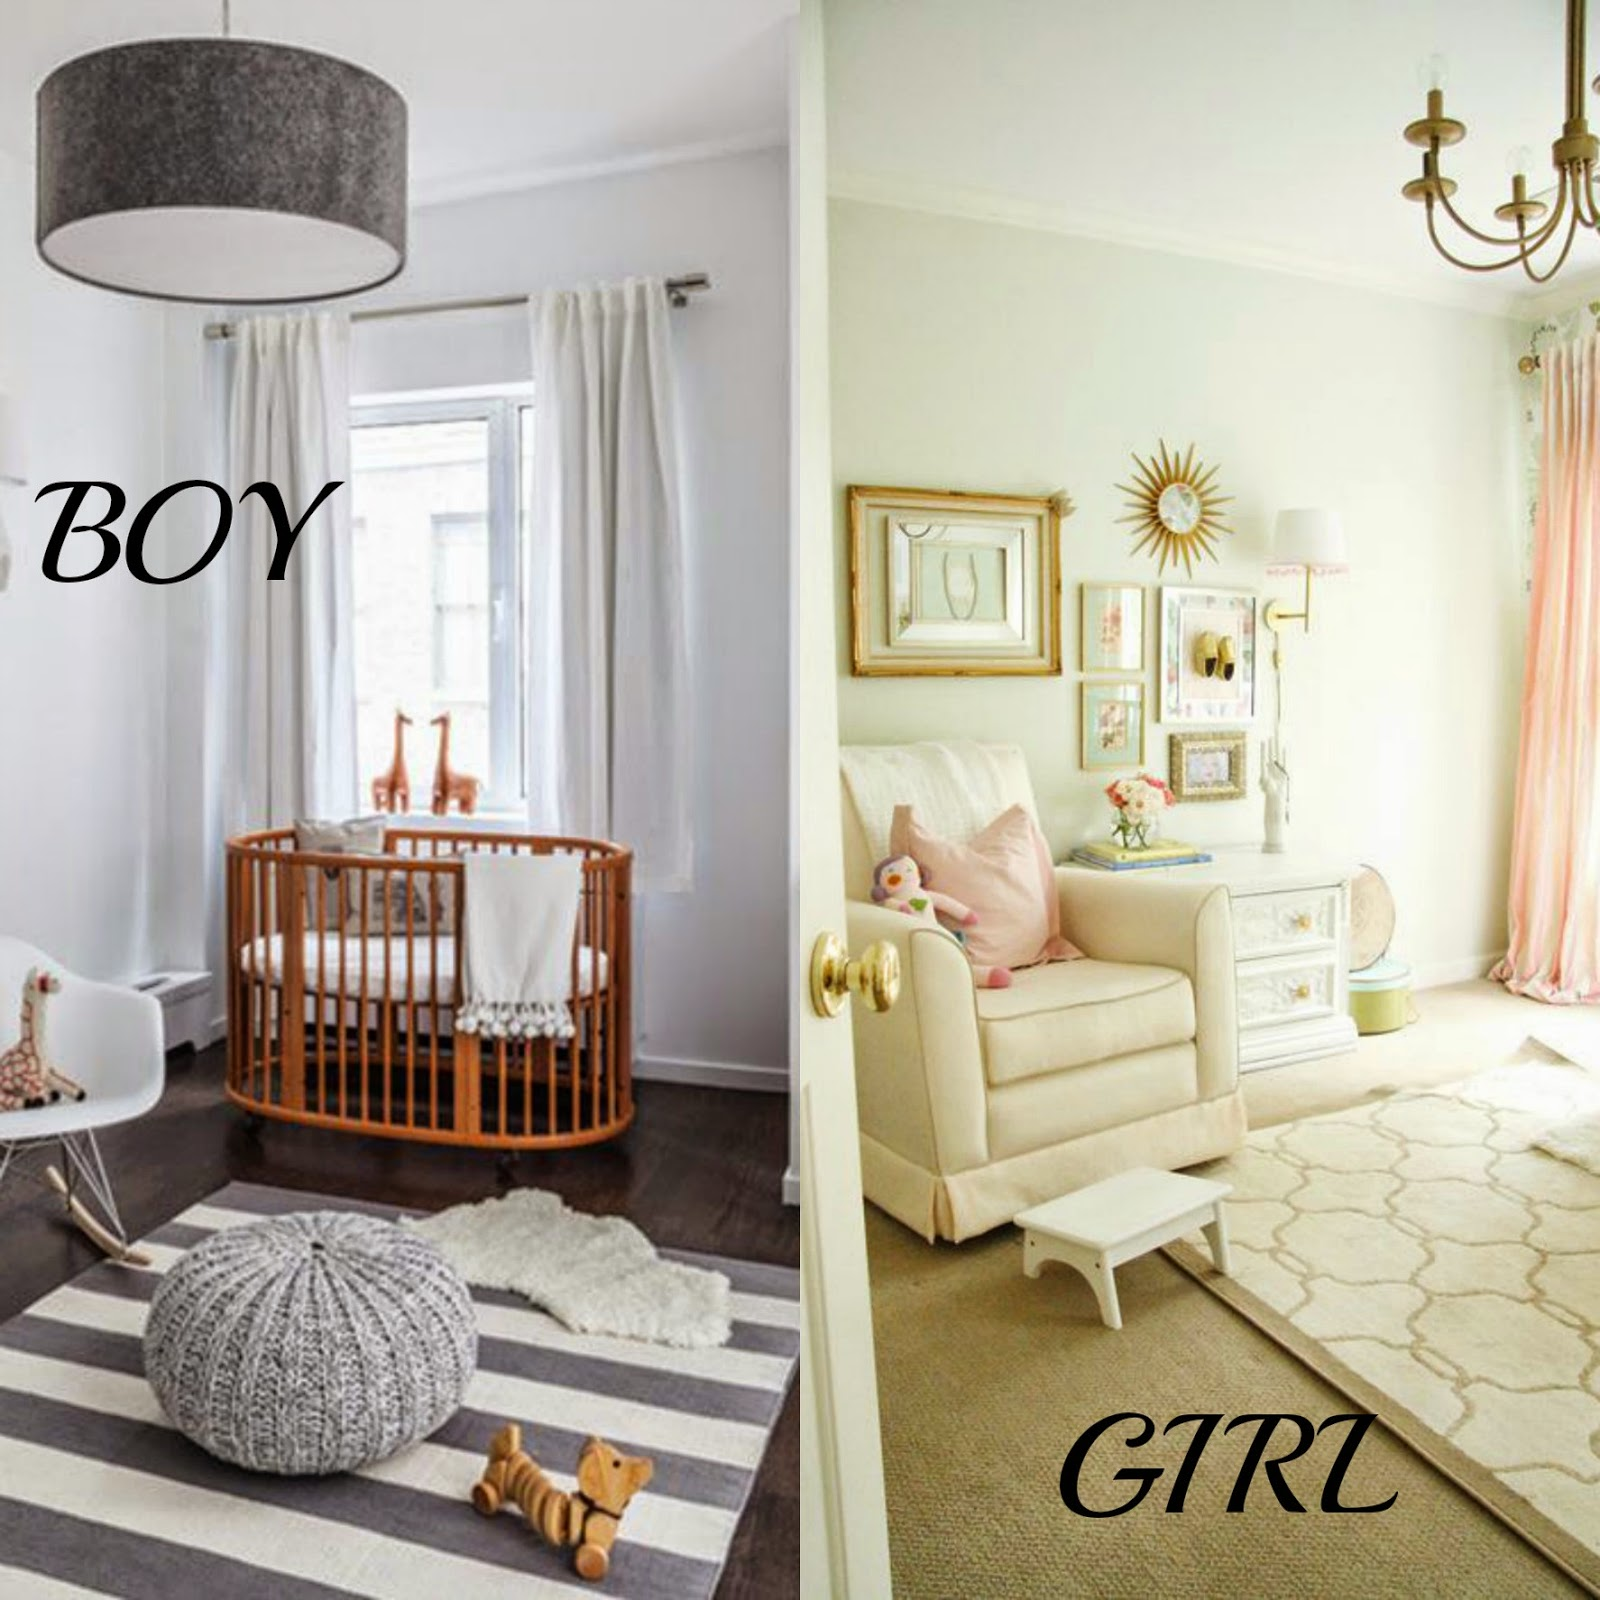 Boy and Girl Nursery Inspiration